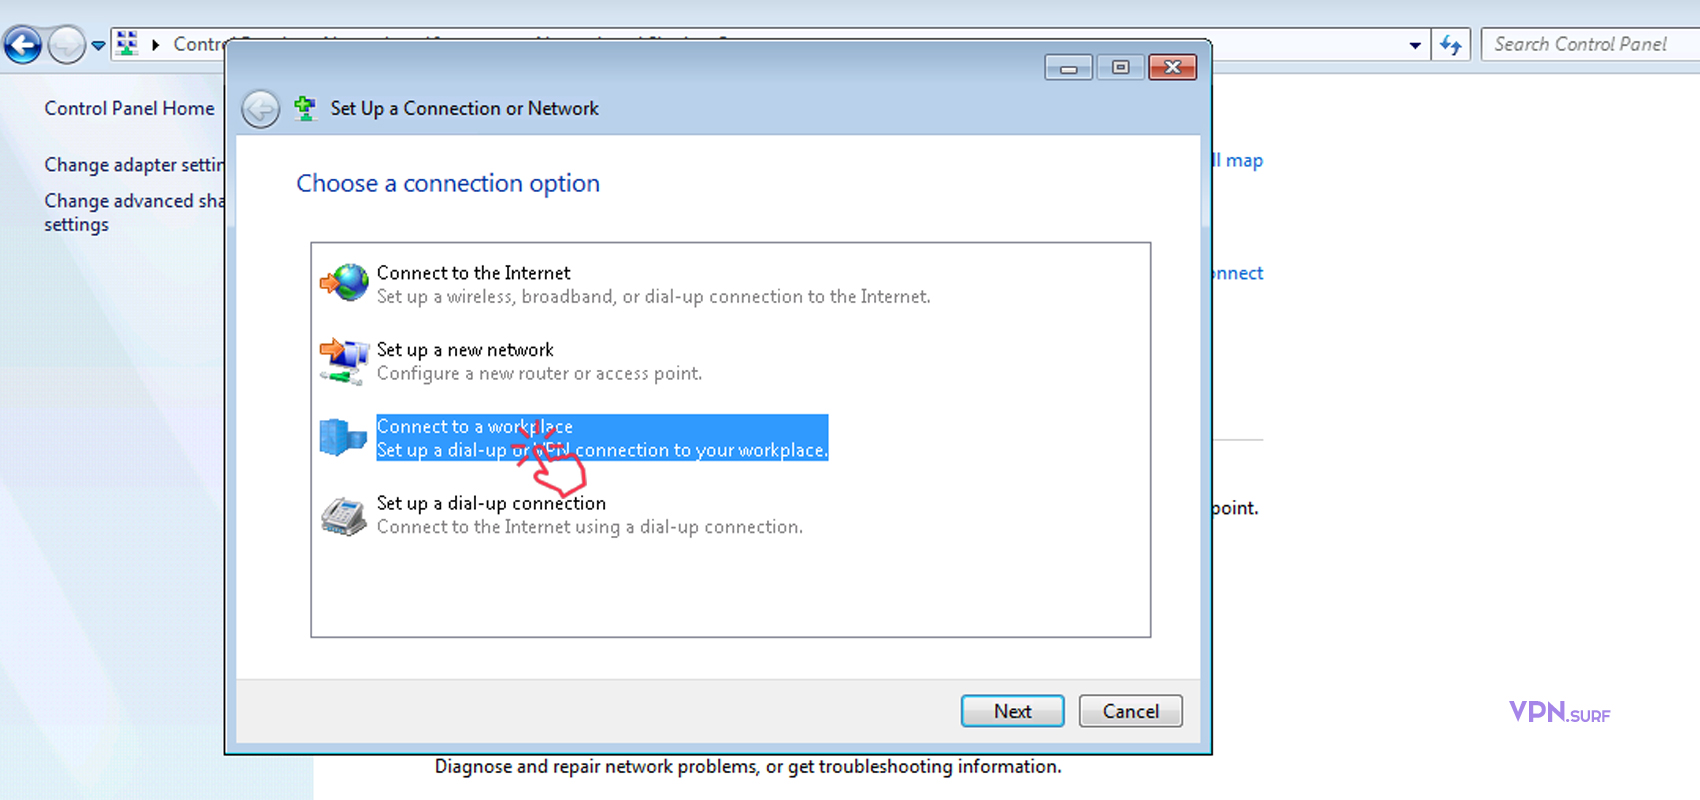 How to Setup a VPN Connection in Windows 7